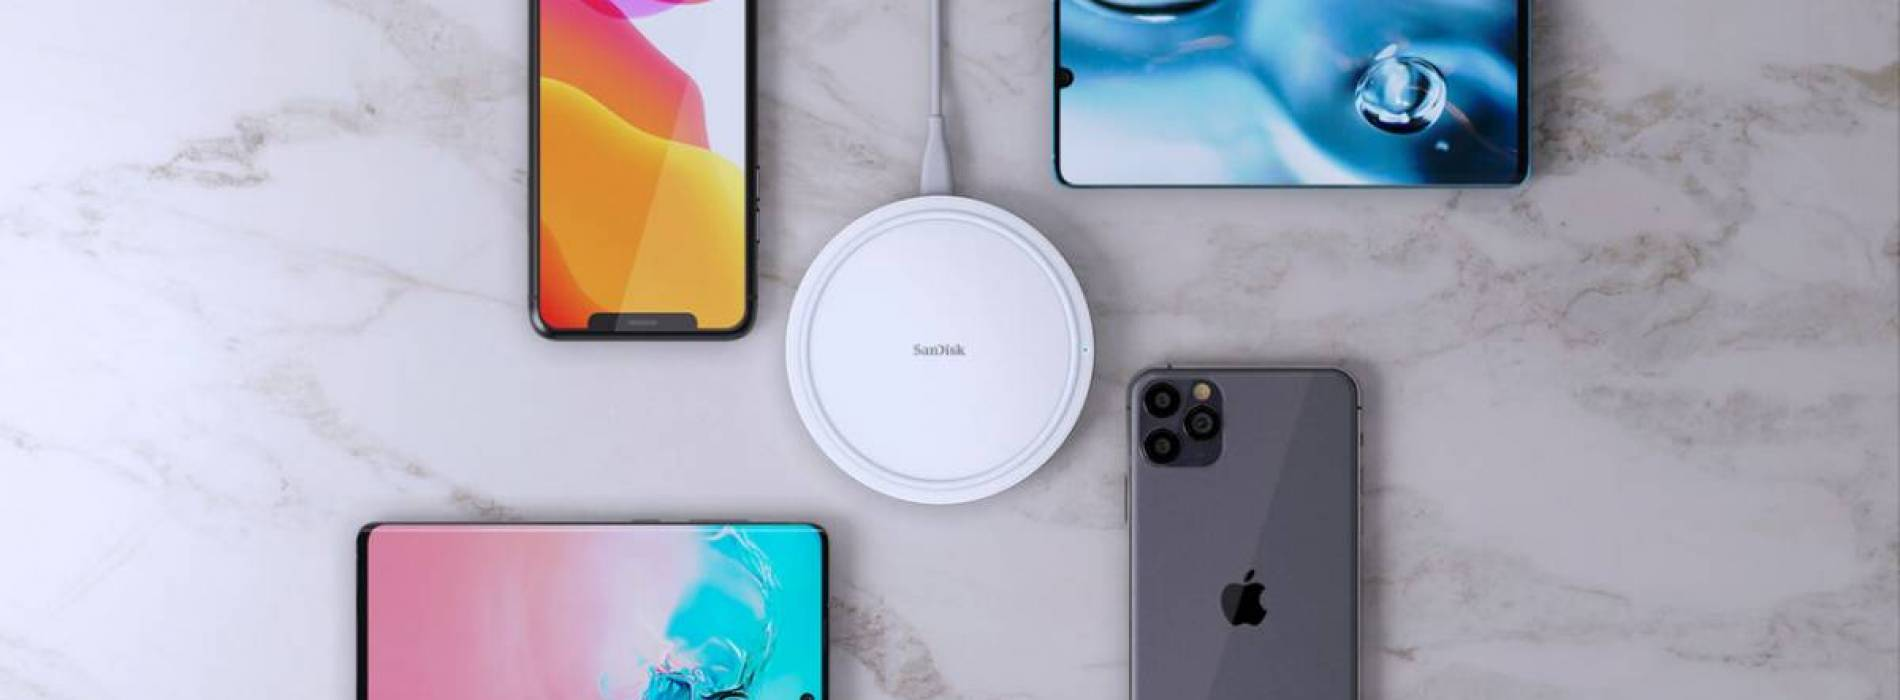 SanDisk IXpand Wireless Charger: carga Qi a 15 w con total fiabilidad